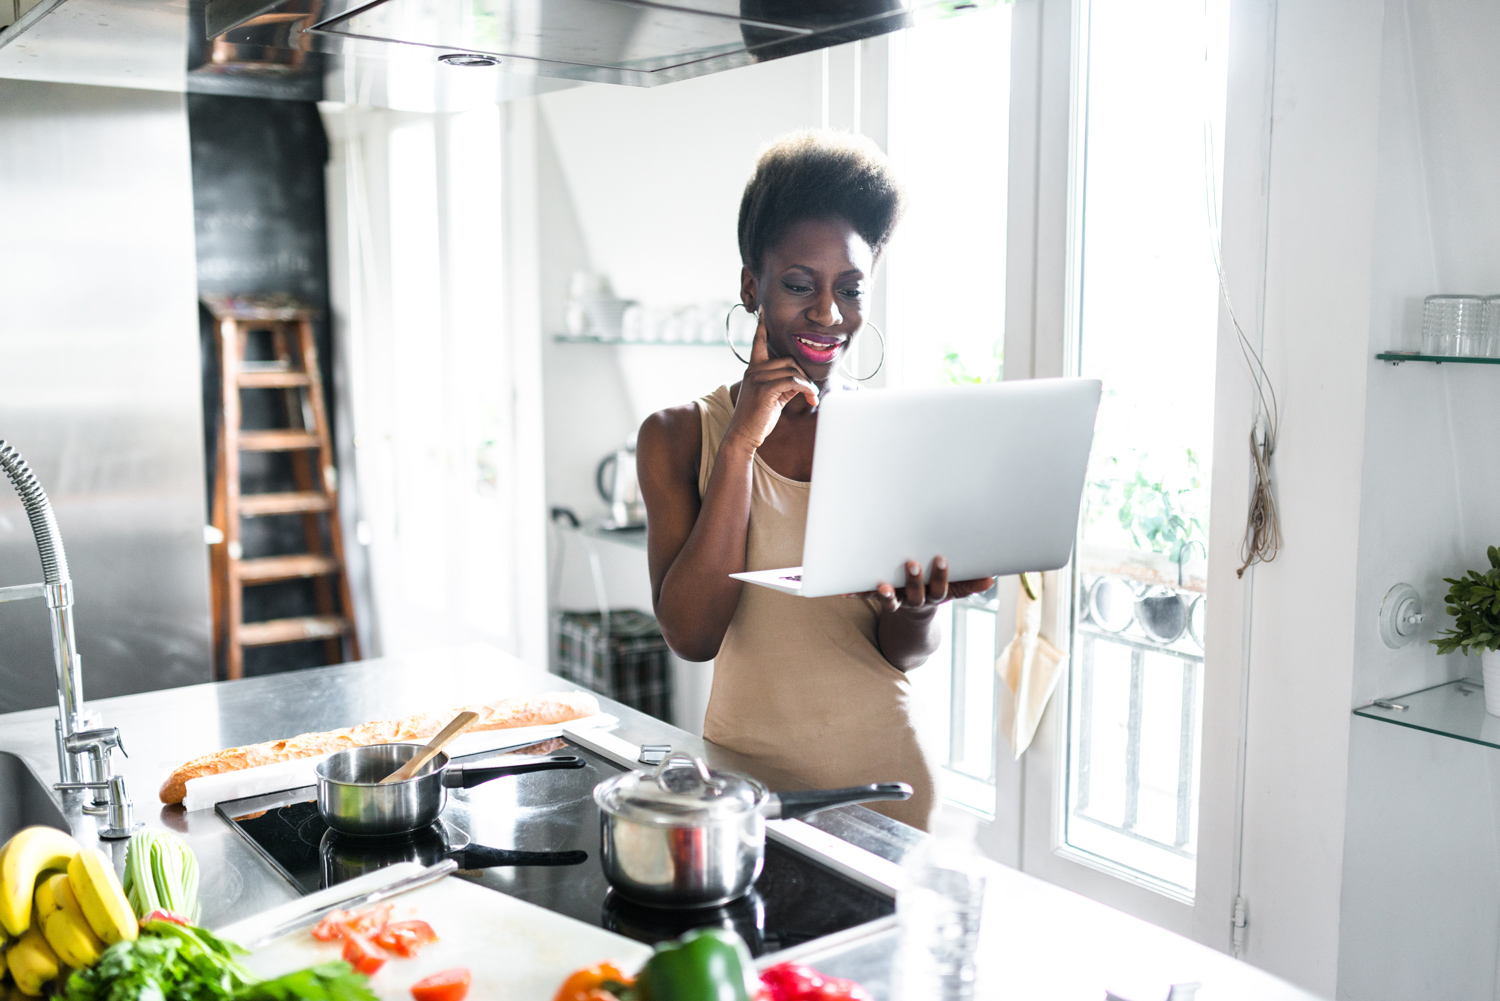 Black-lady-in-the-kitchen-with-laptop-cooking-fruits-vegetables-on-the-table.jpg